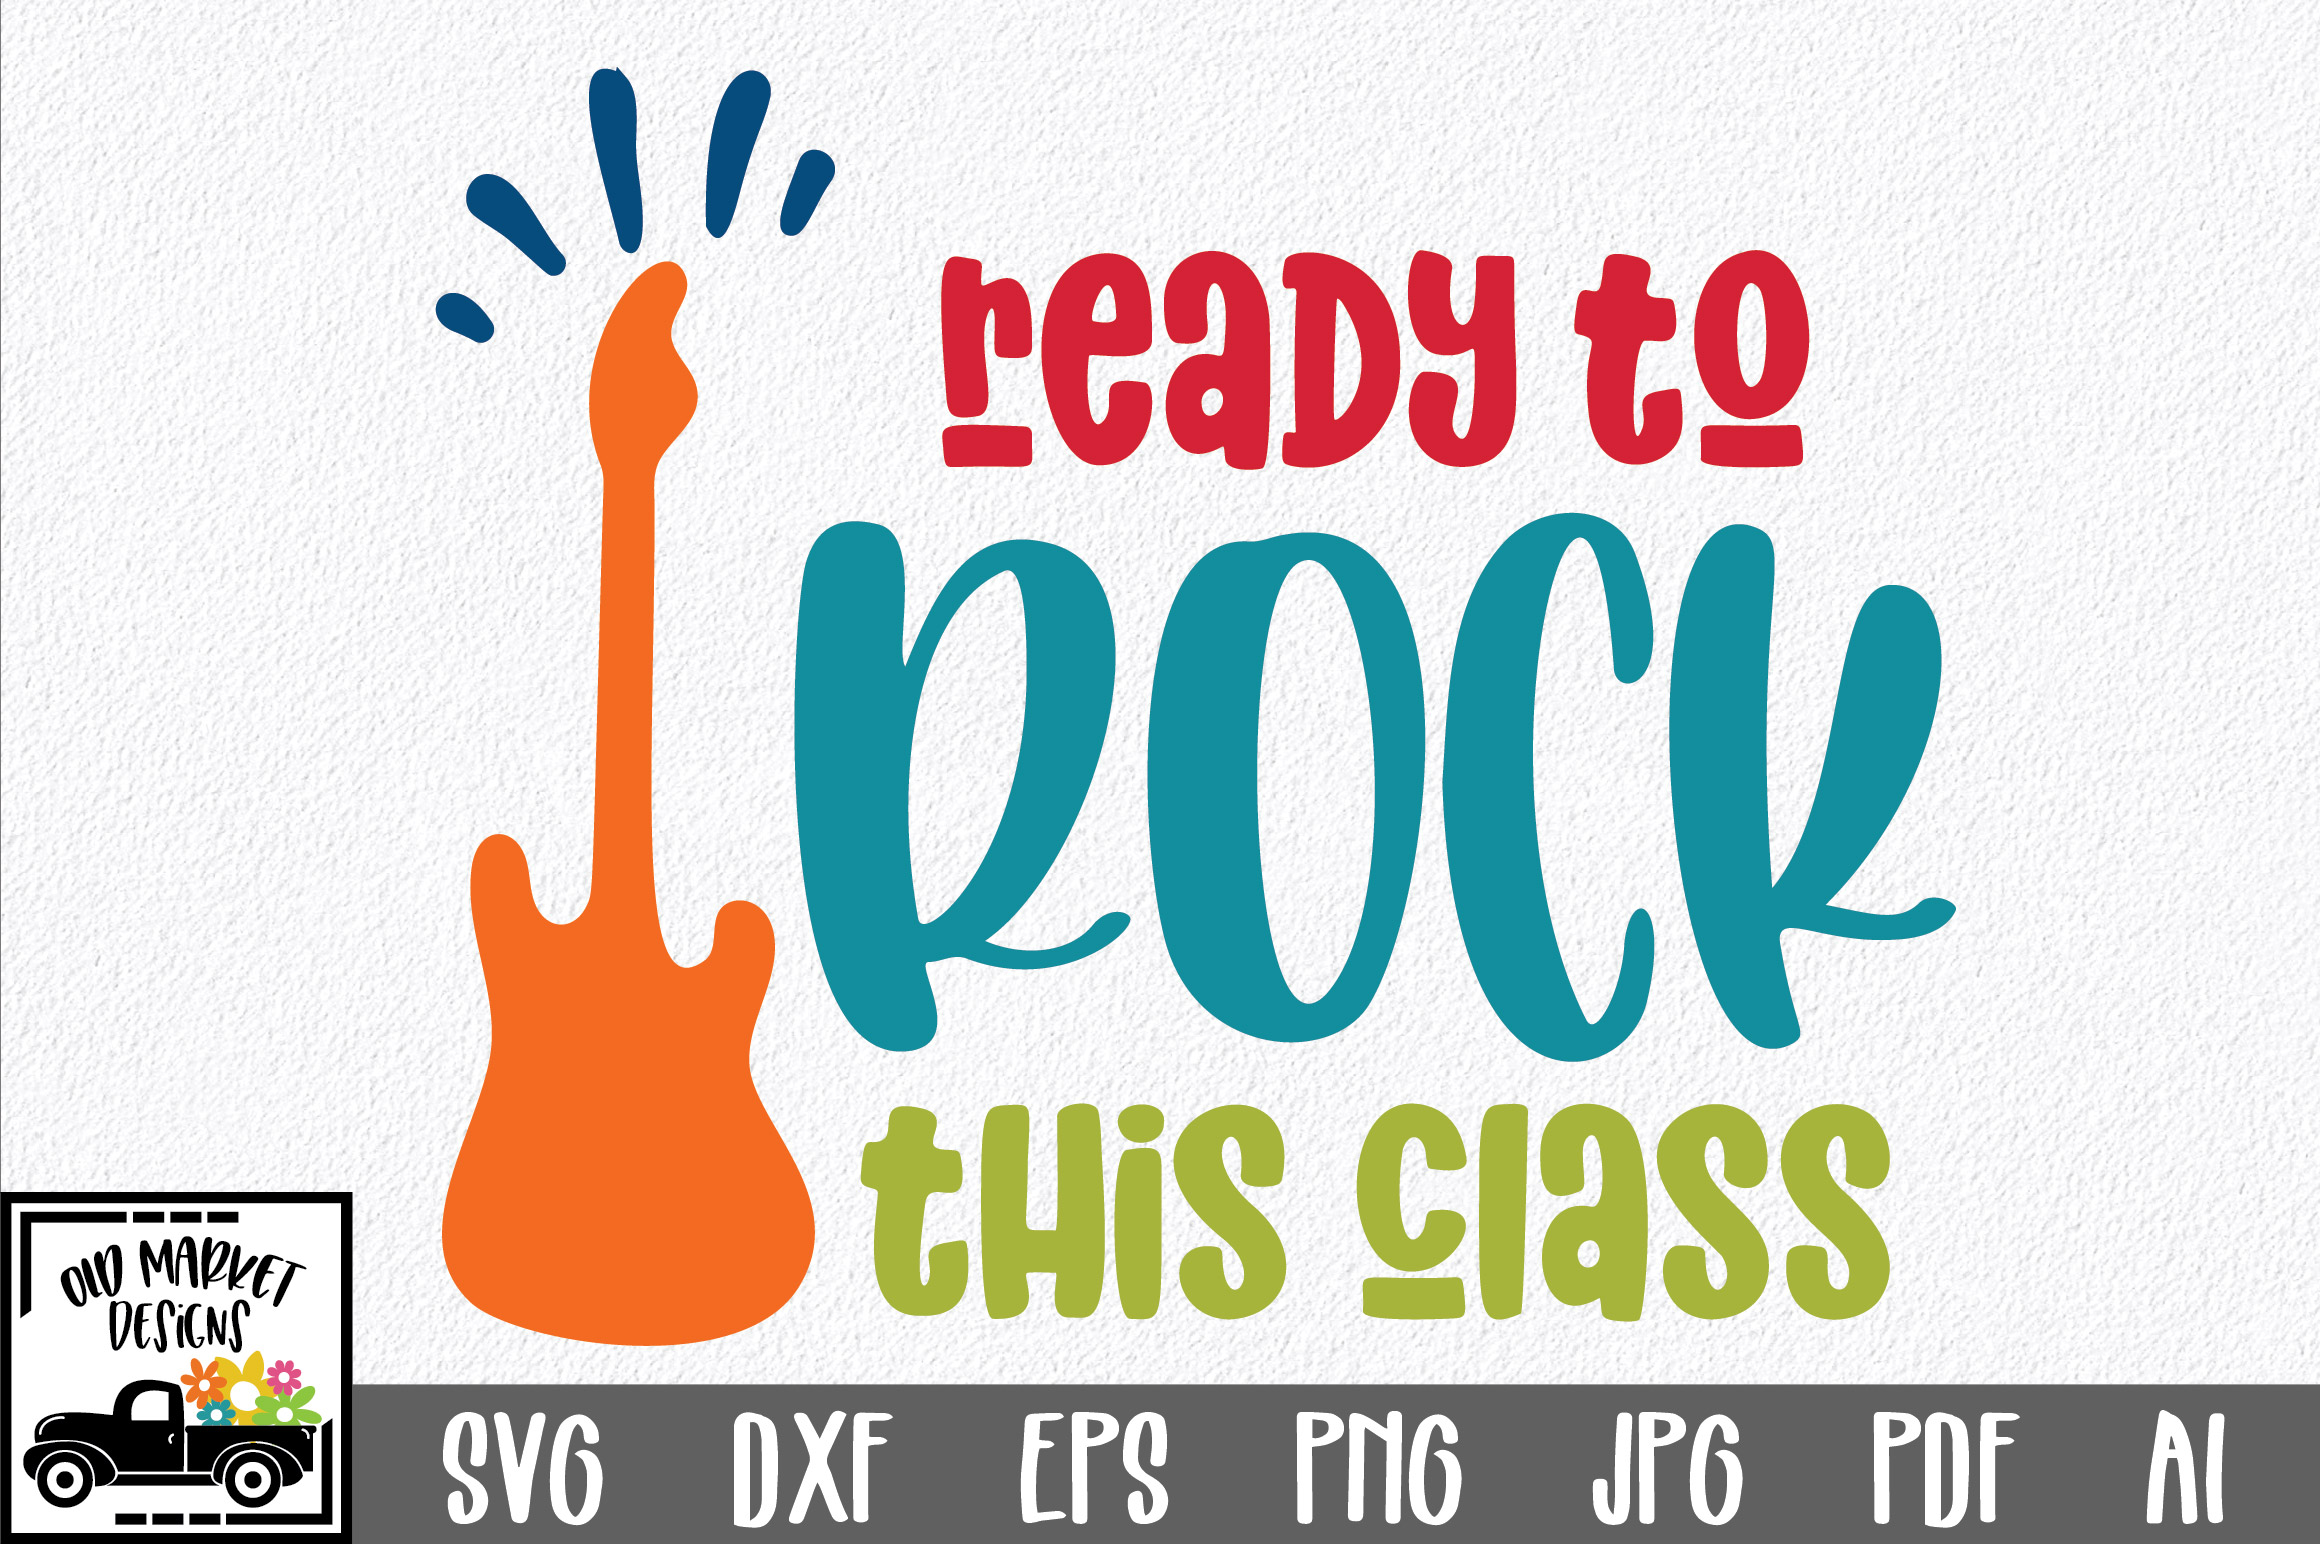 Download Free Ready To Rock This Class Svg Cut File Graphic By for Cricut Explore, Silhouette and other cutting machines.